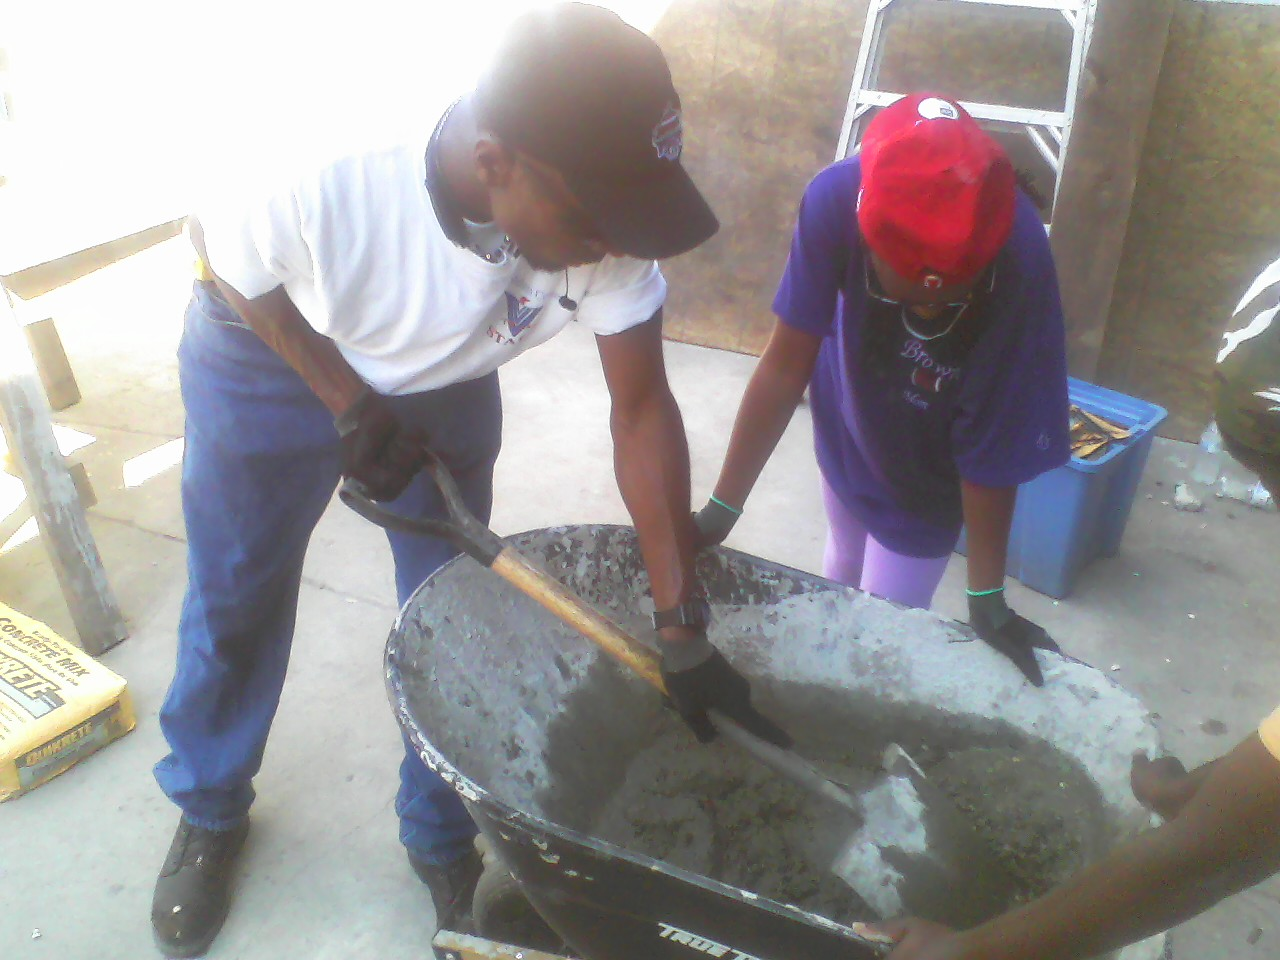 Making cement!